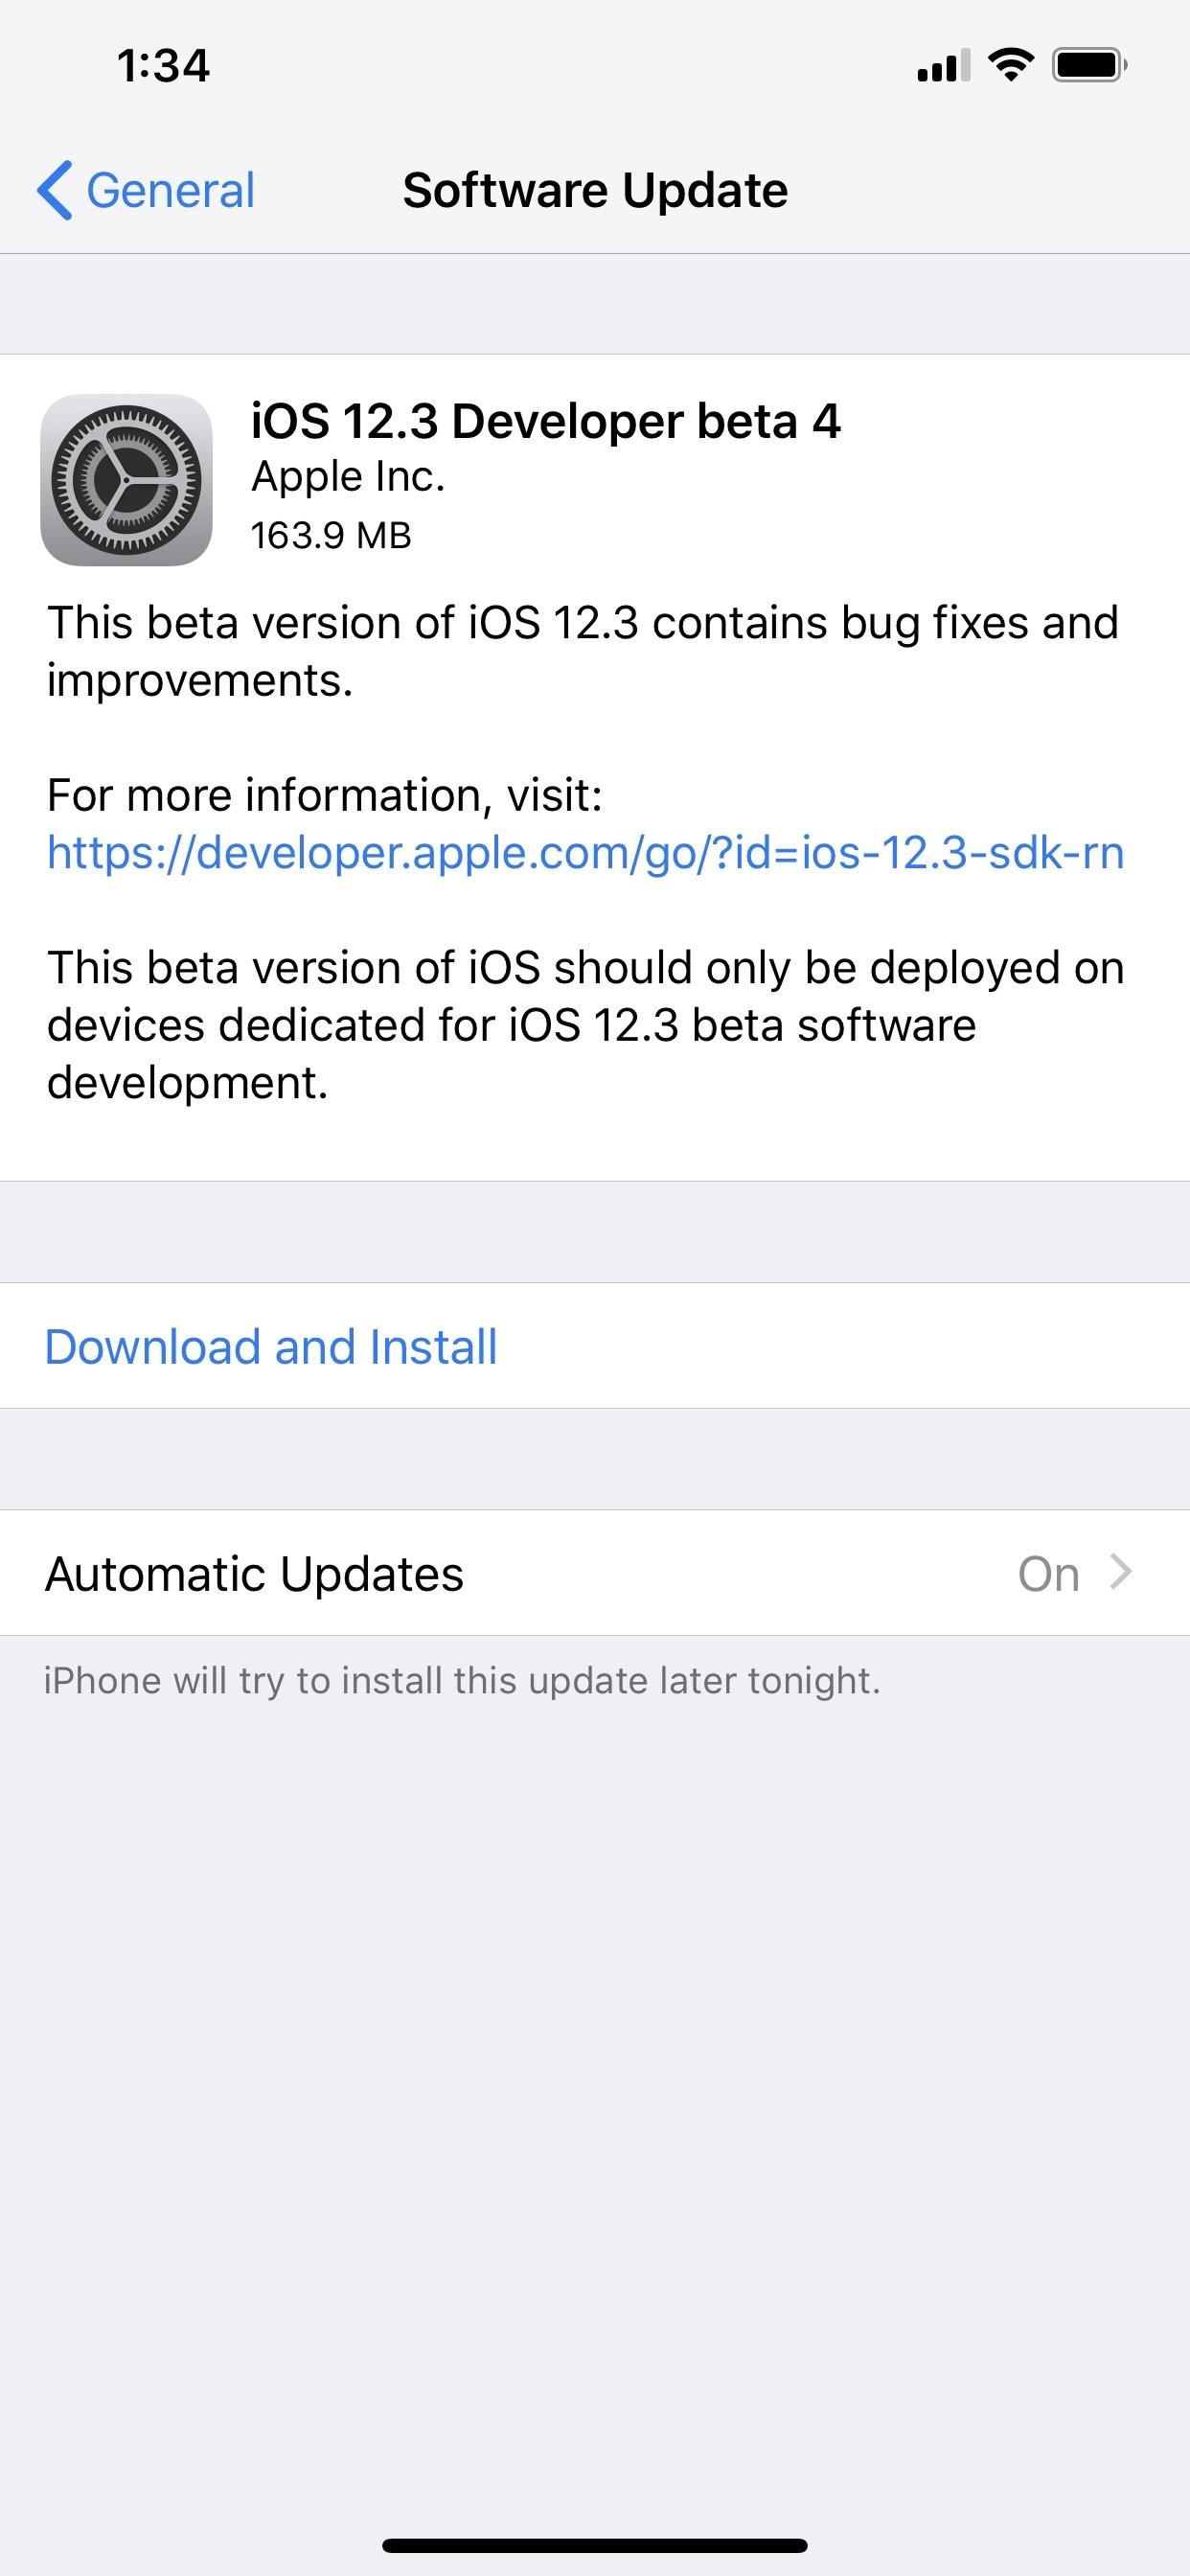 Apple Releases iOS 12.3 Beta 4 for iPhone to Developers